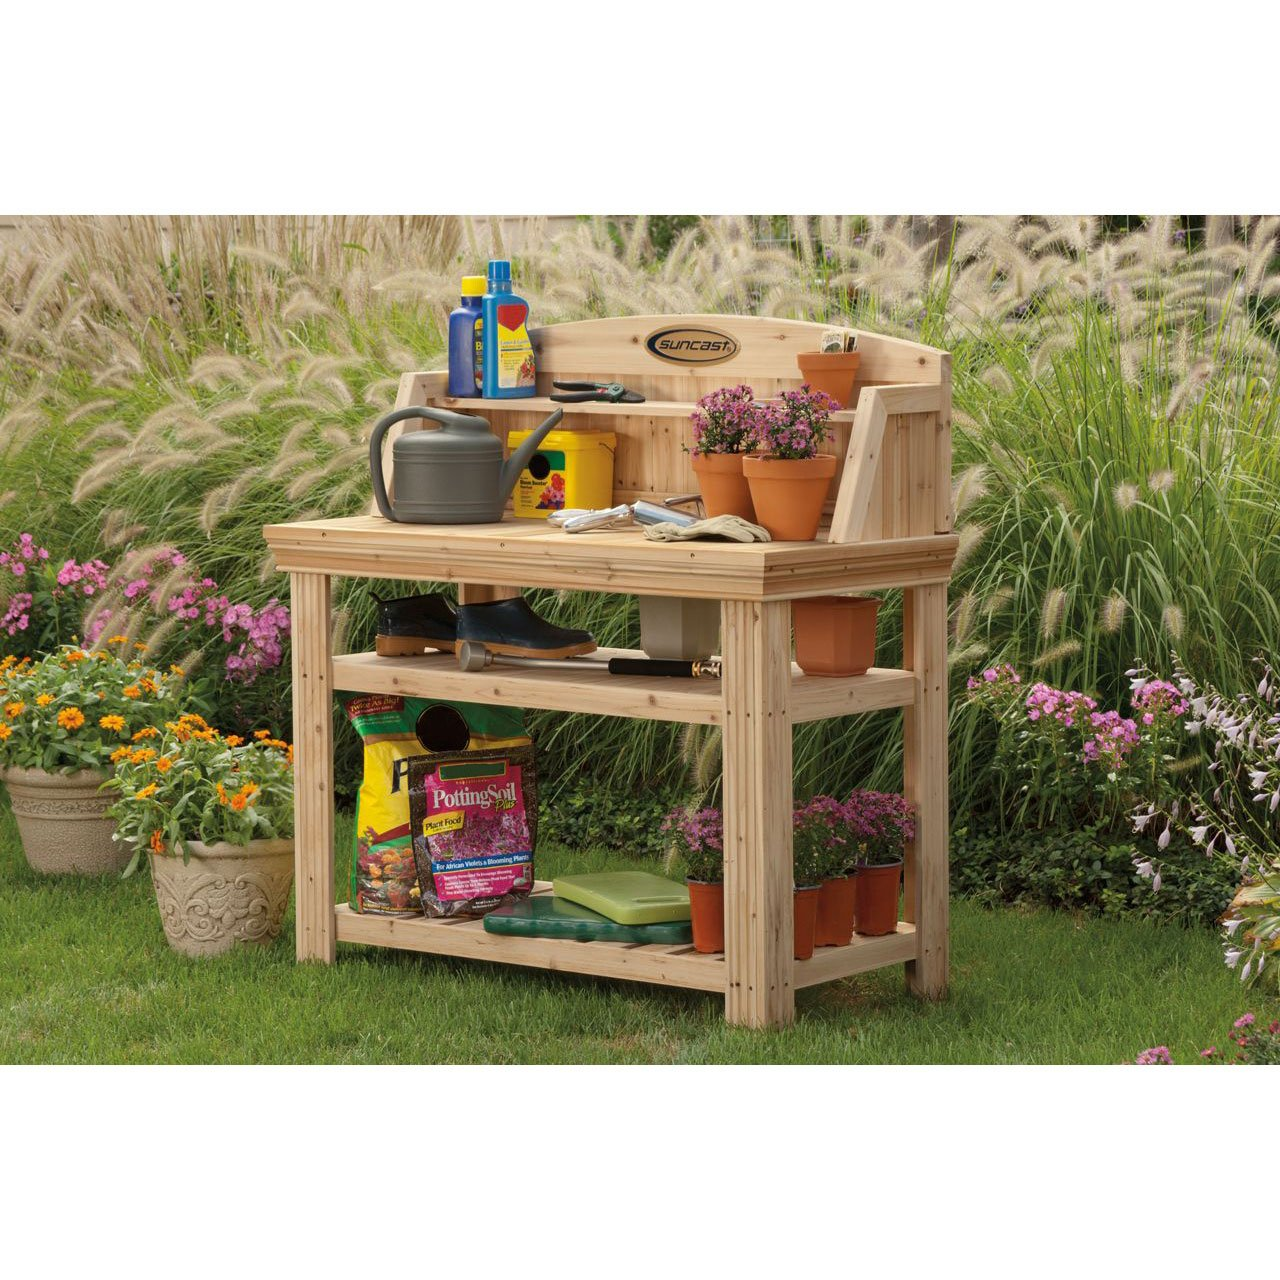 Stupendous Details About Suncast Pt4500 Cedar Potting Bench With Natural Finish And Two Storage Shelves Creativecarmelina Interior Chair Design Creativecarmelinacom